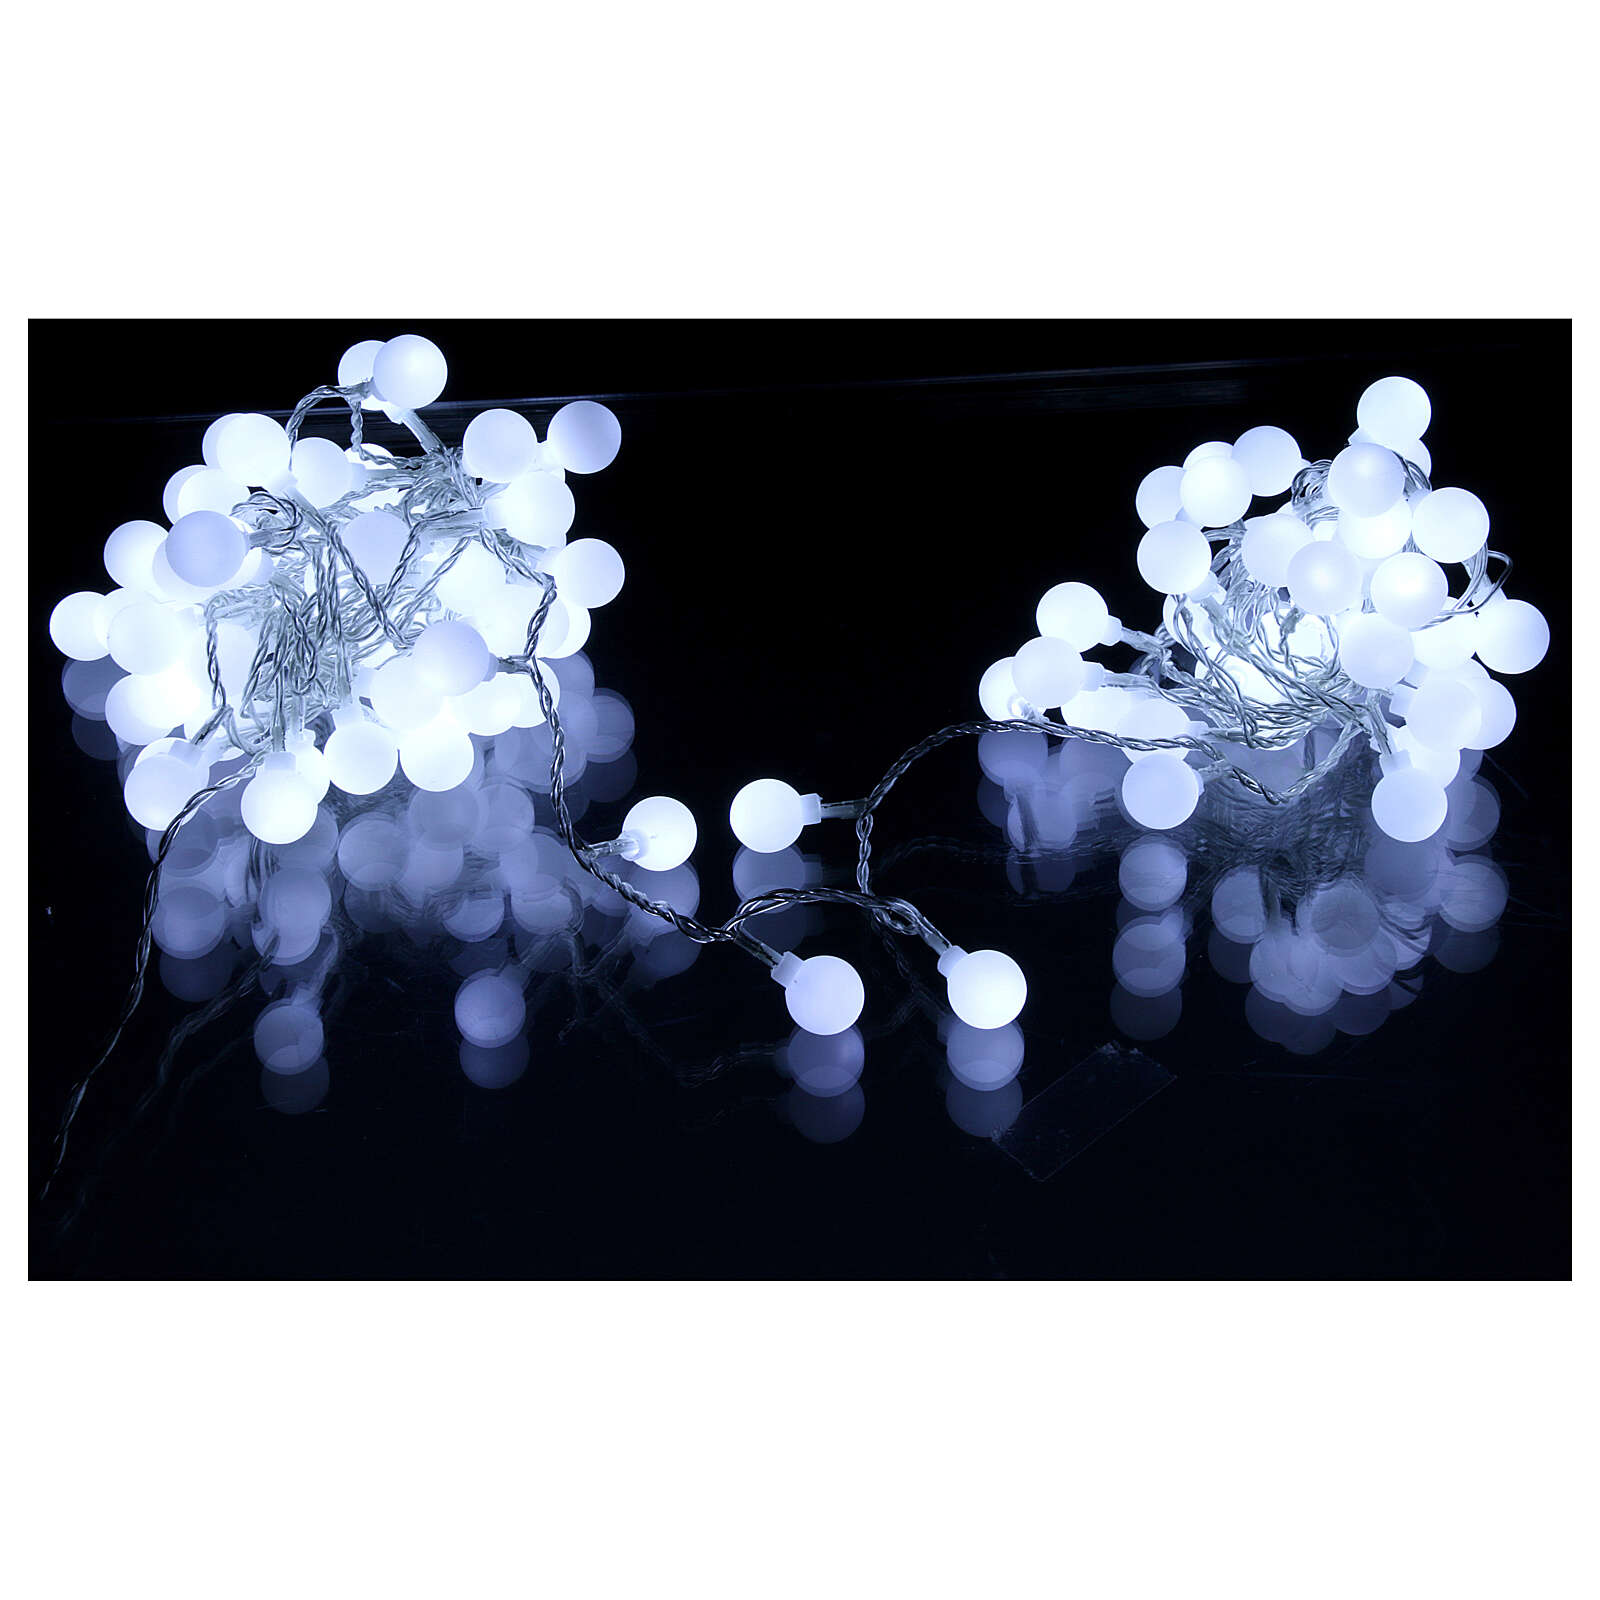 Sphere lights 100 led ice white internal and external use 3